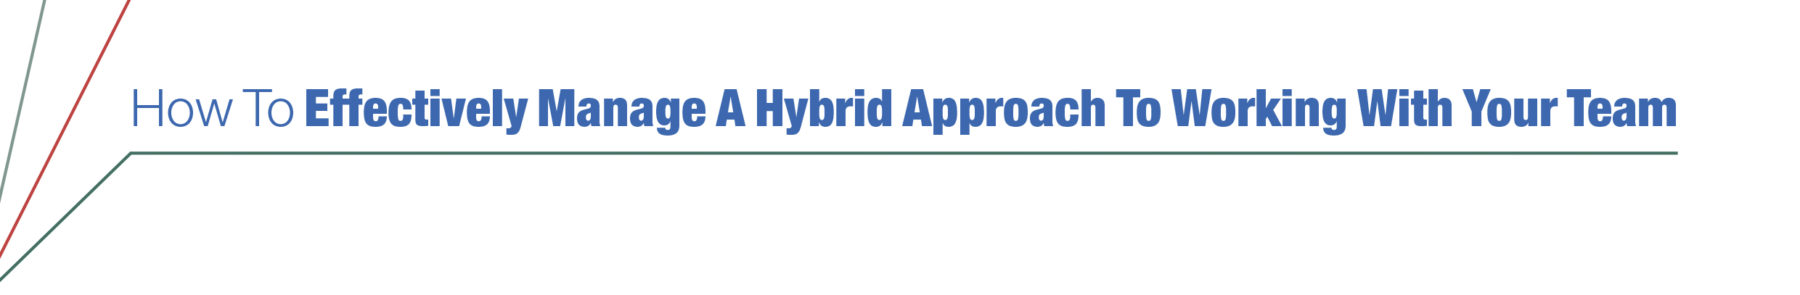 How To Effectively Manage A Hybrid Approach